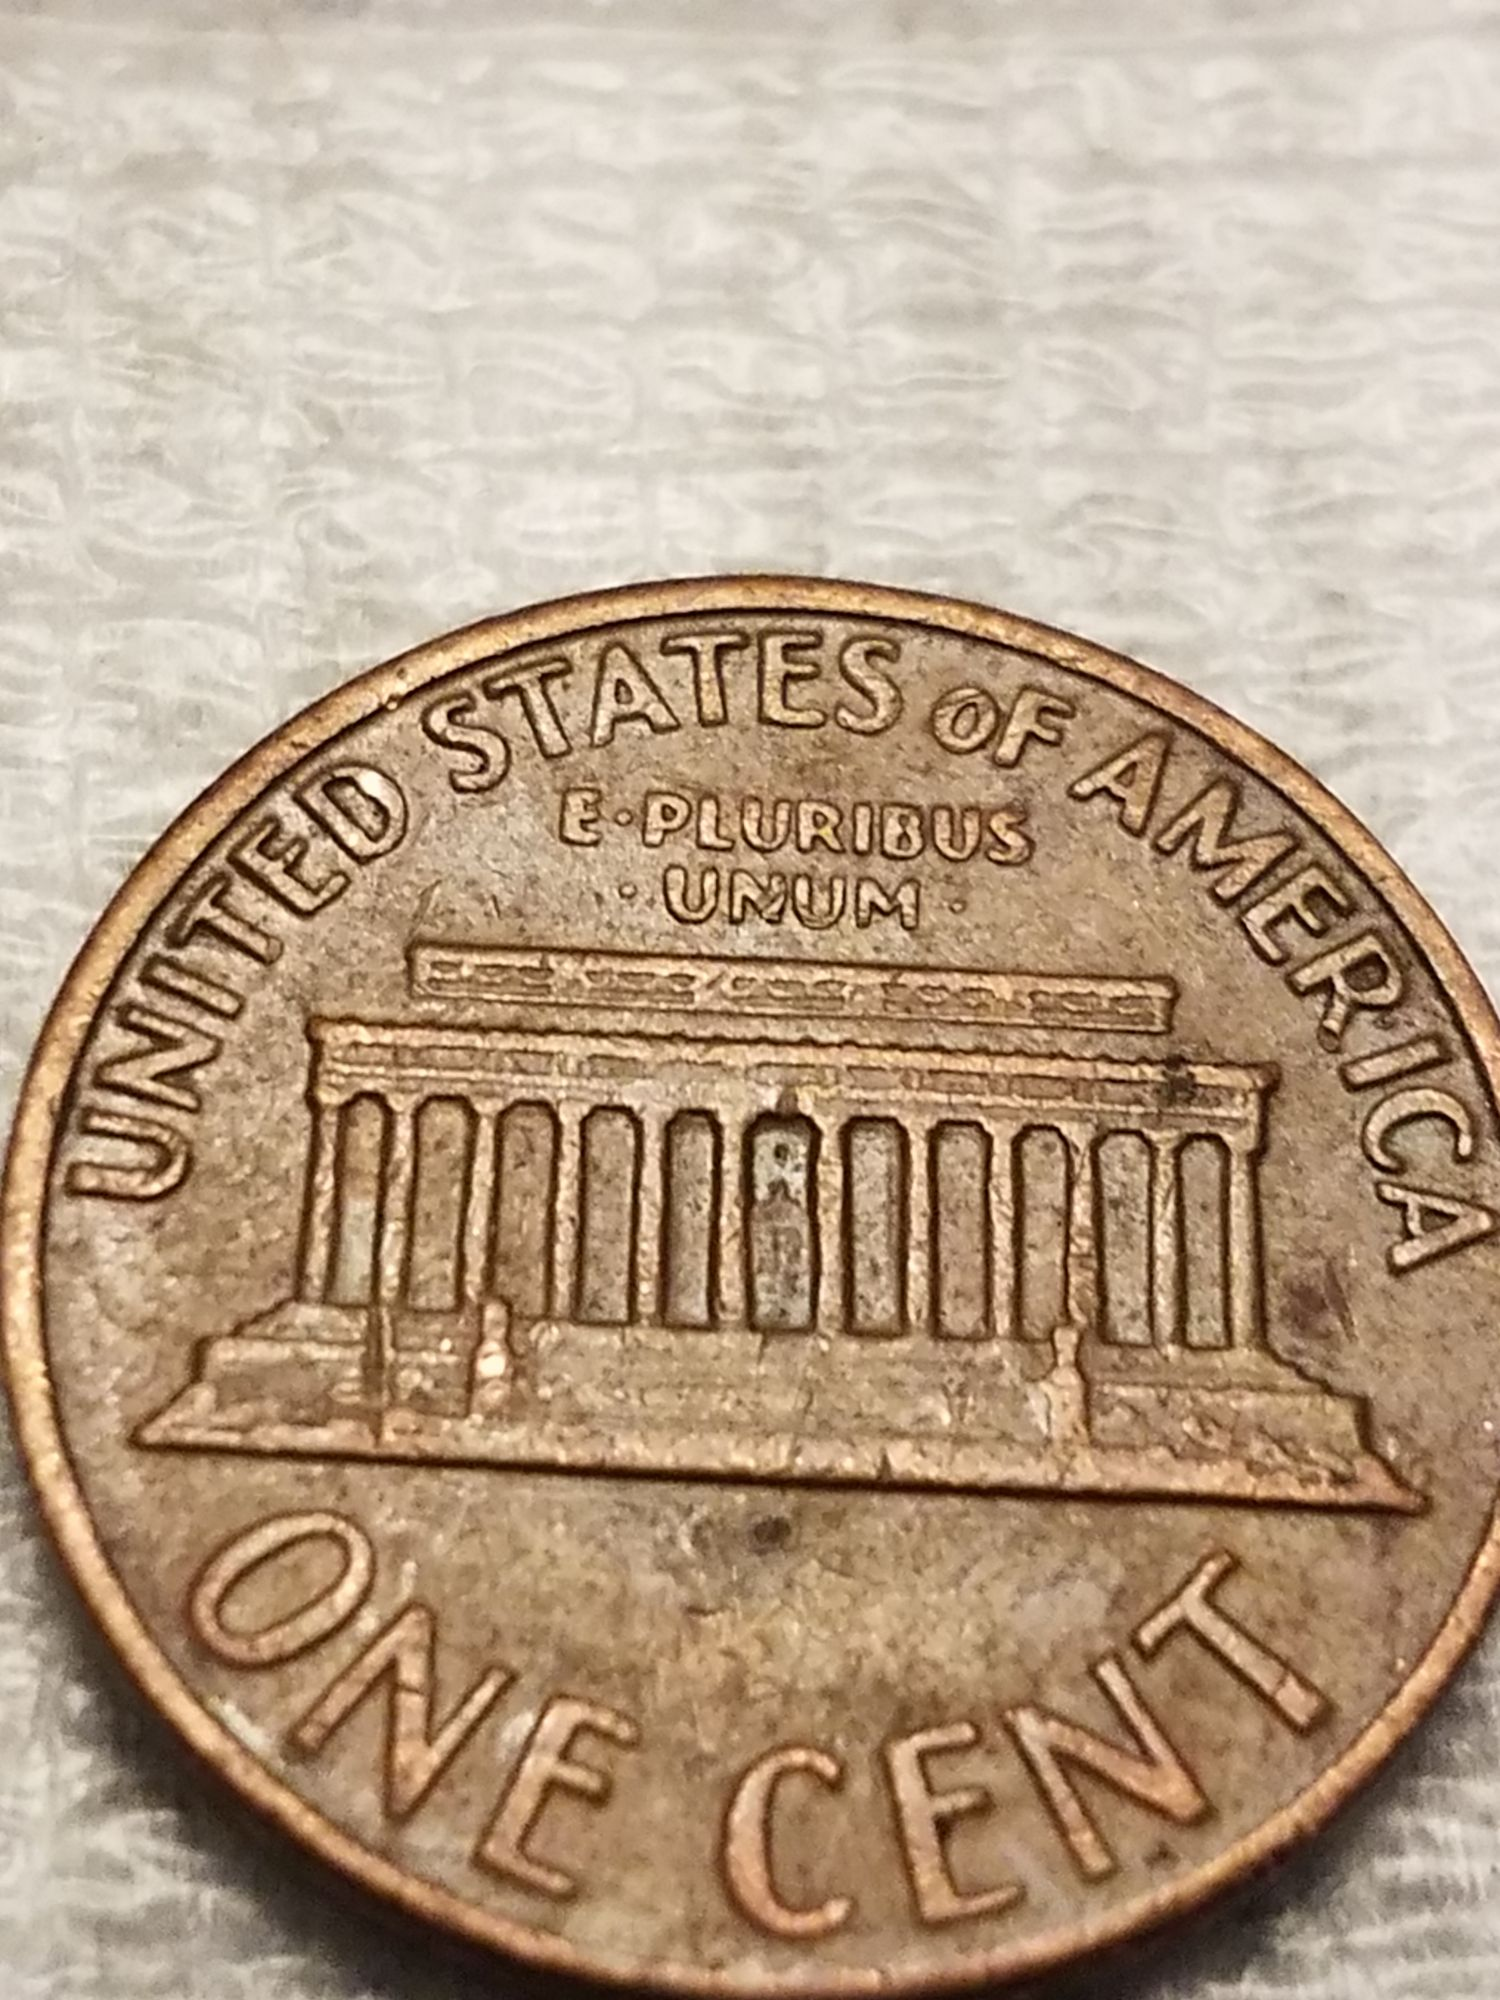 1969 d penny floating roof - Newbie Coin Collecting